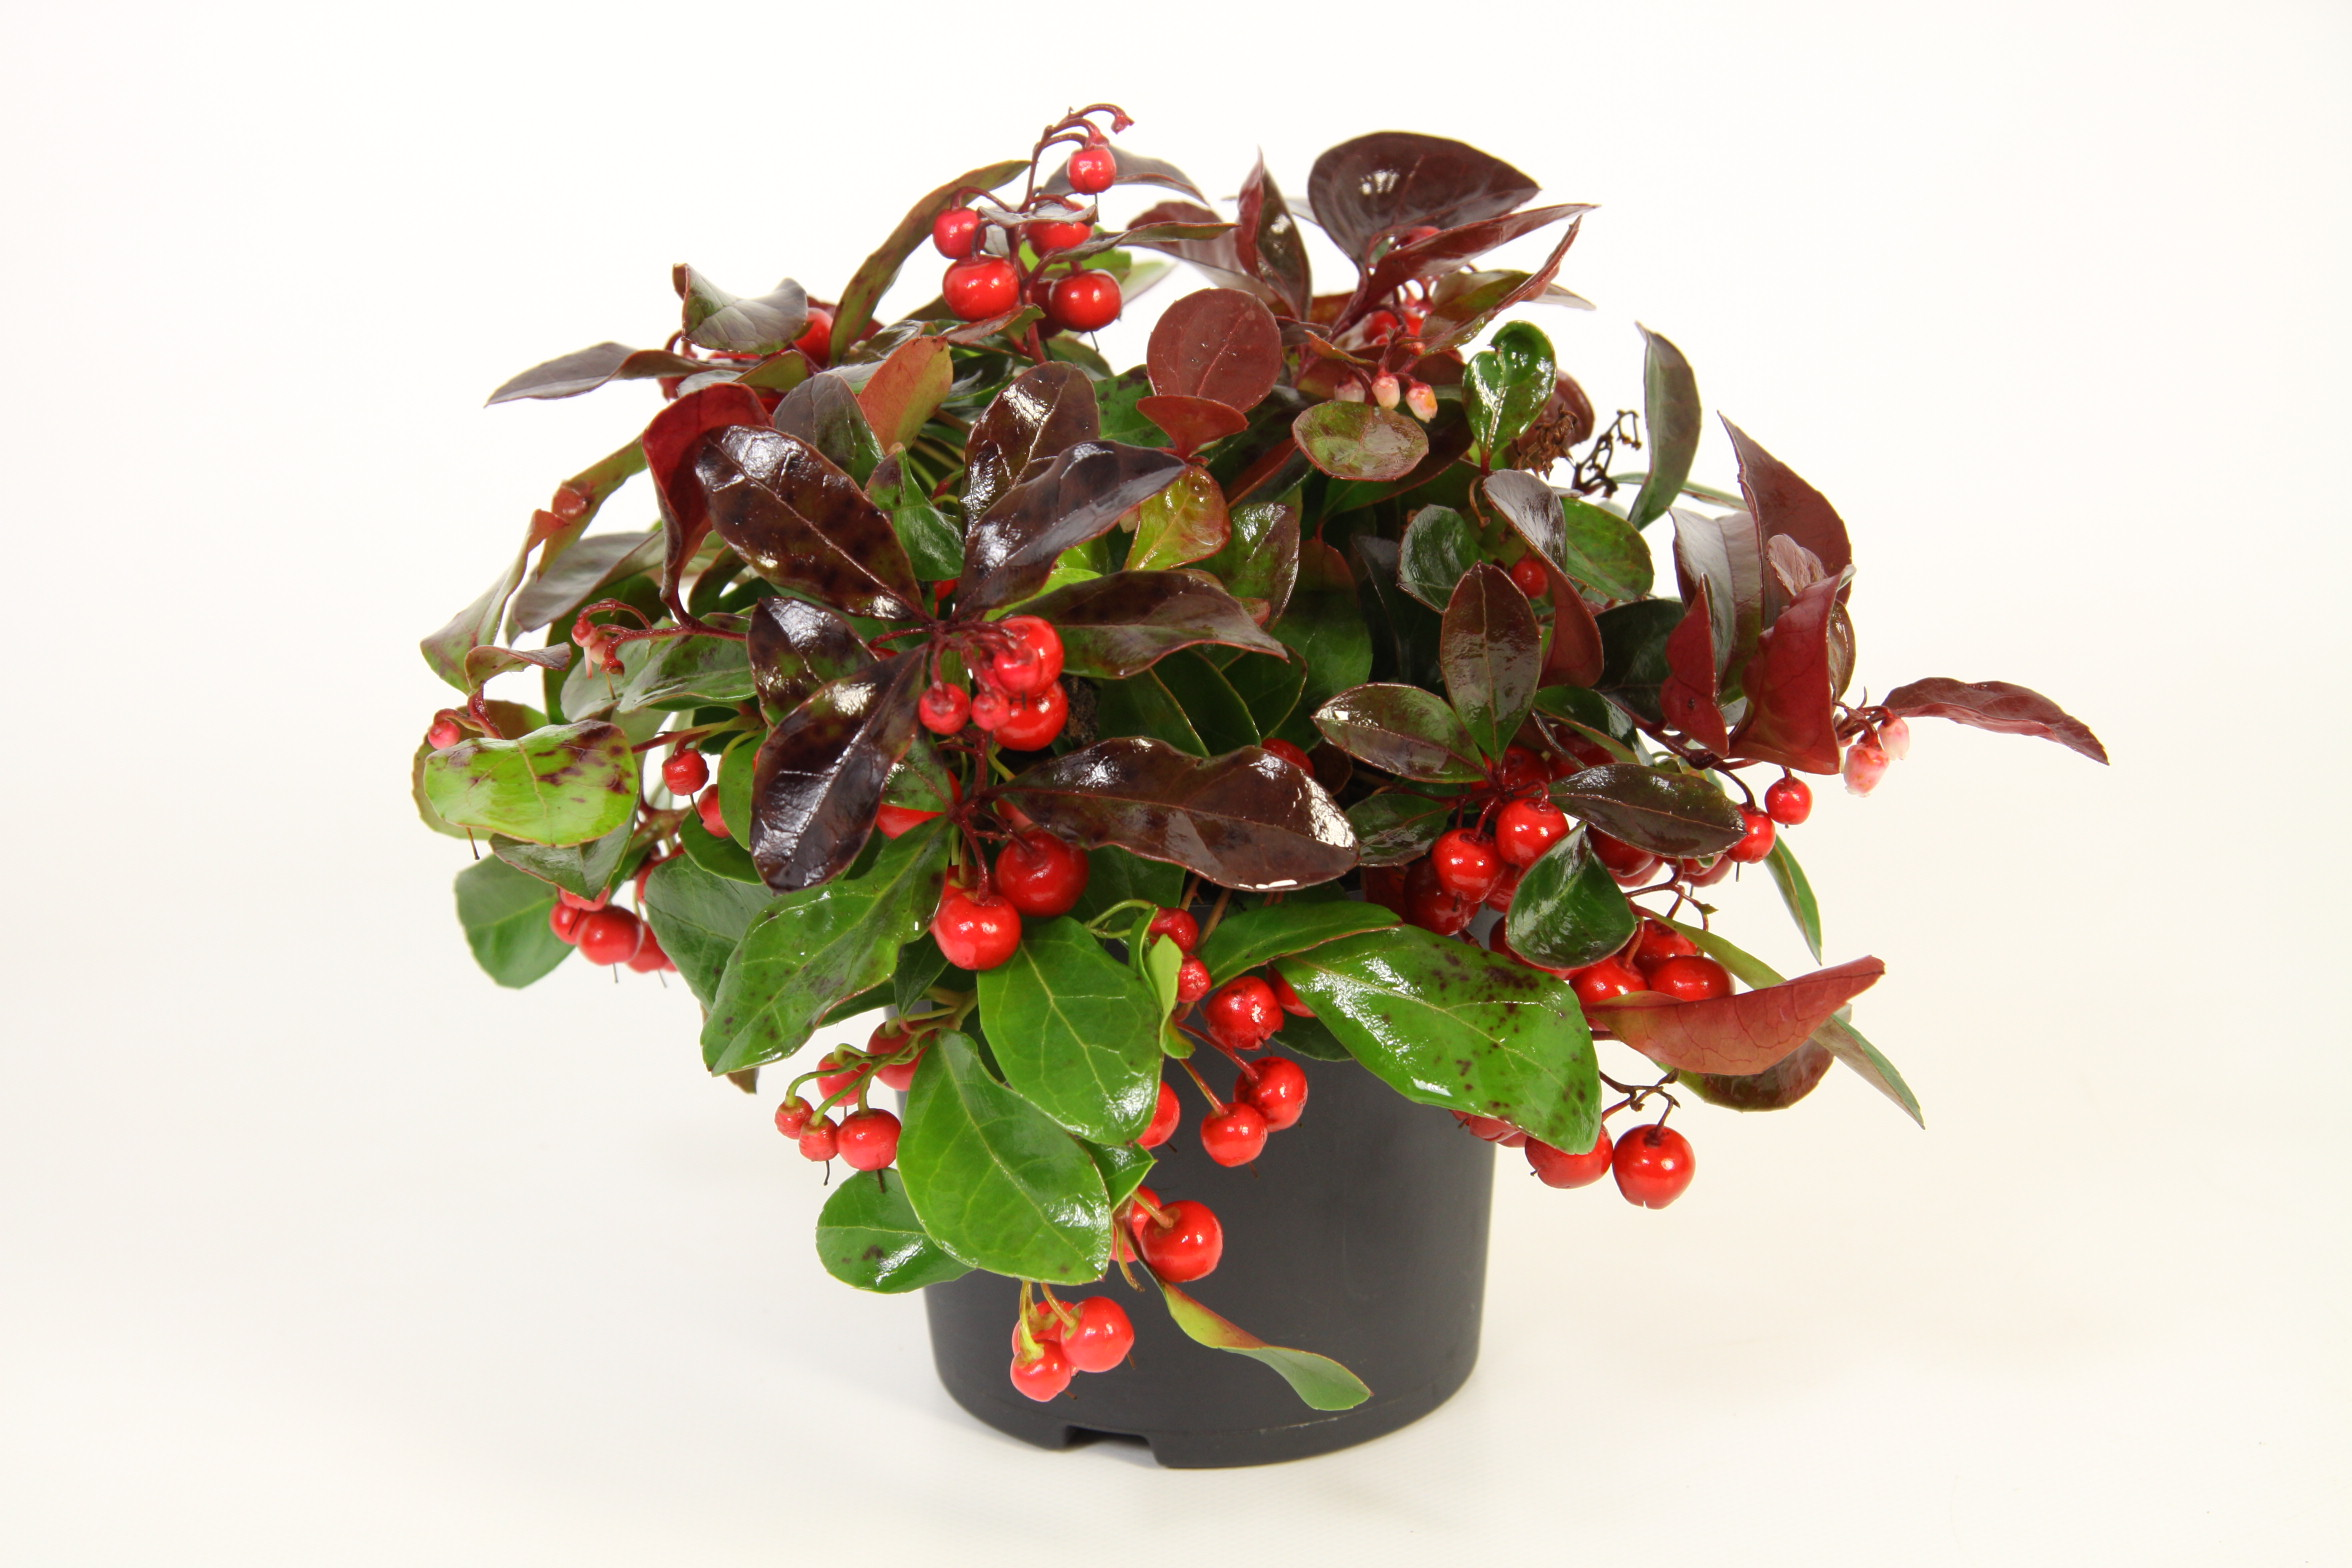 Bergthee 39 big berry 39 gaultheria 39 big berry 39 for Plante exterieur hiver ete